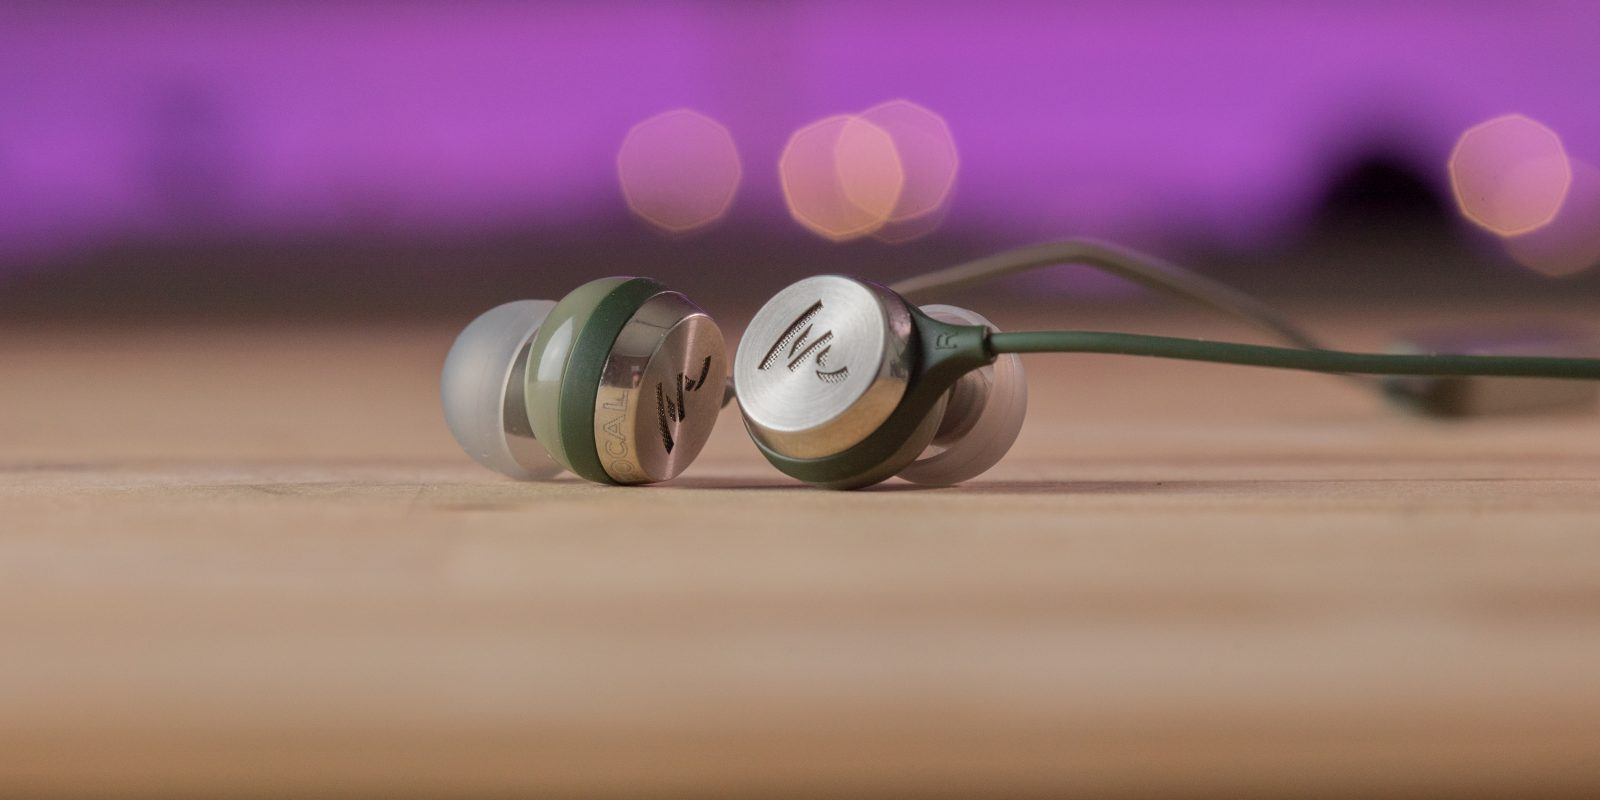 Focal Sphear Wireless Review: High quality audio on the go